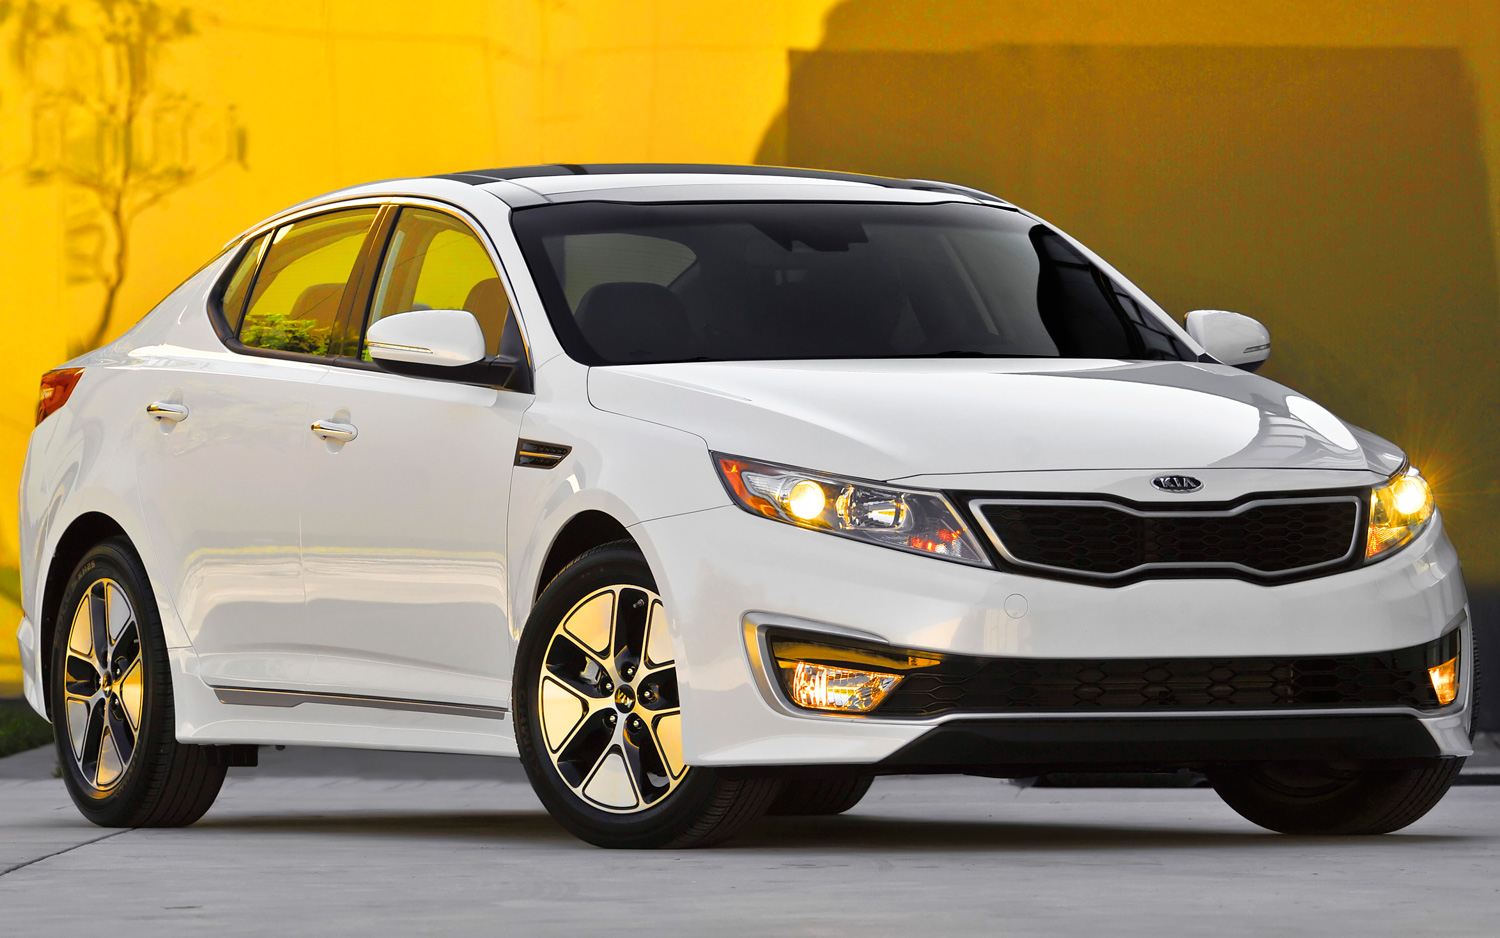 Kia Optima 2013 >> New Car Models: Kia optima 2013